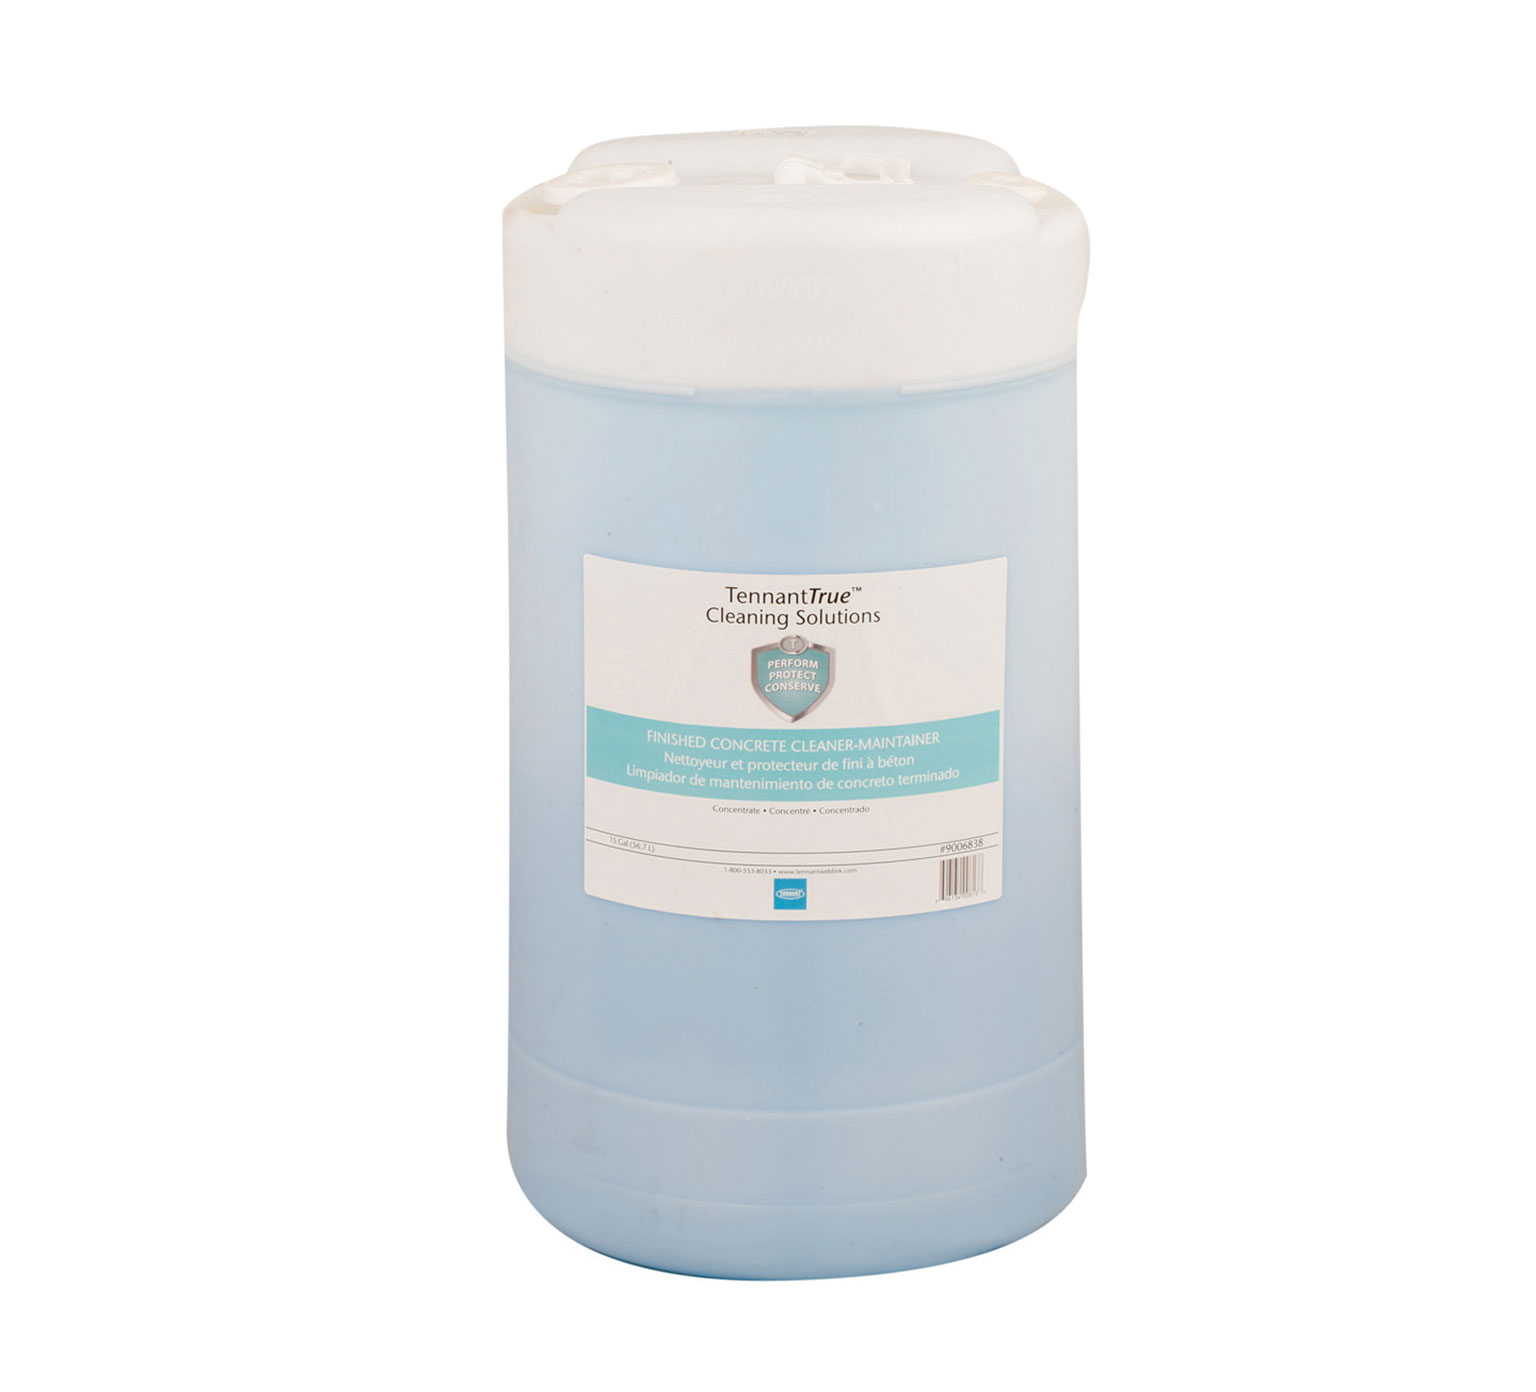 Tennant Light Blue Concrete Cleaner Maintainer 15 Gallon 9006838